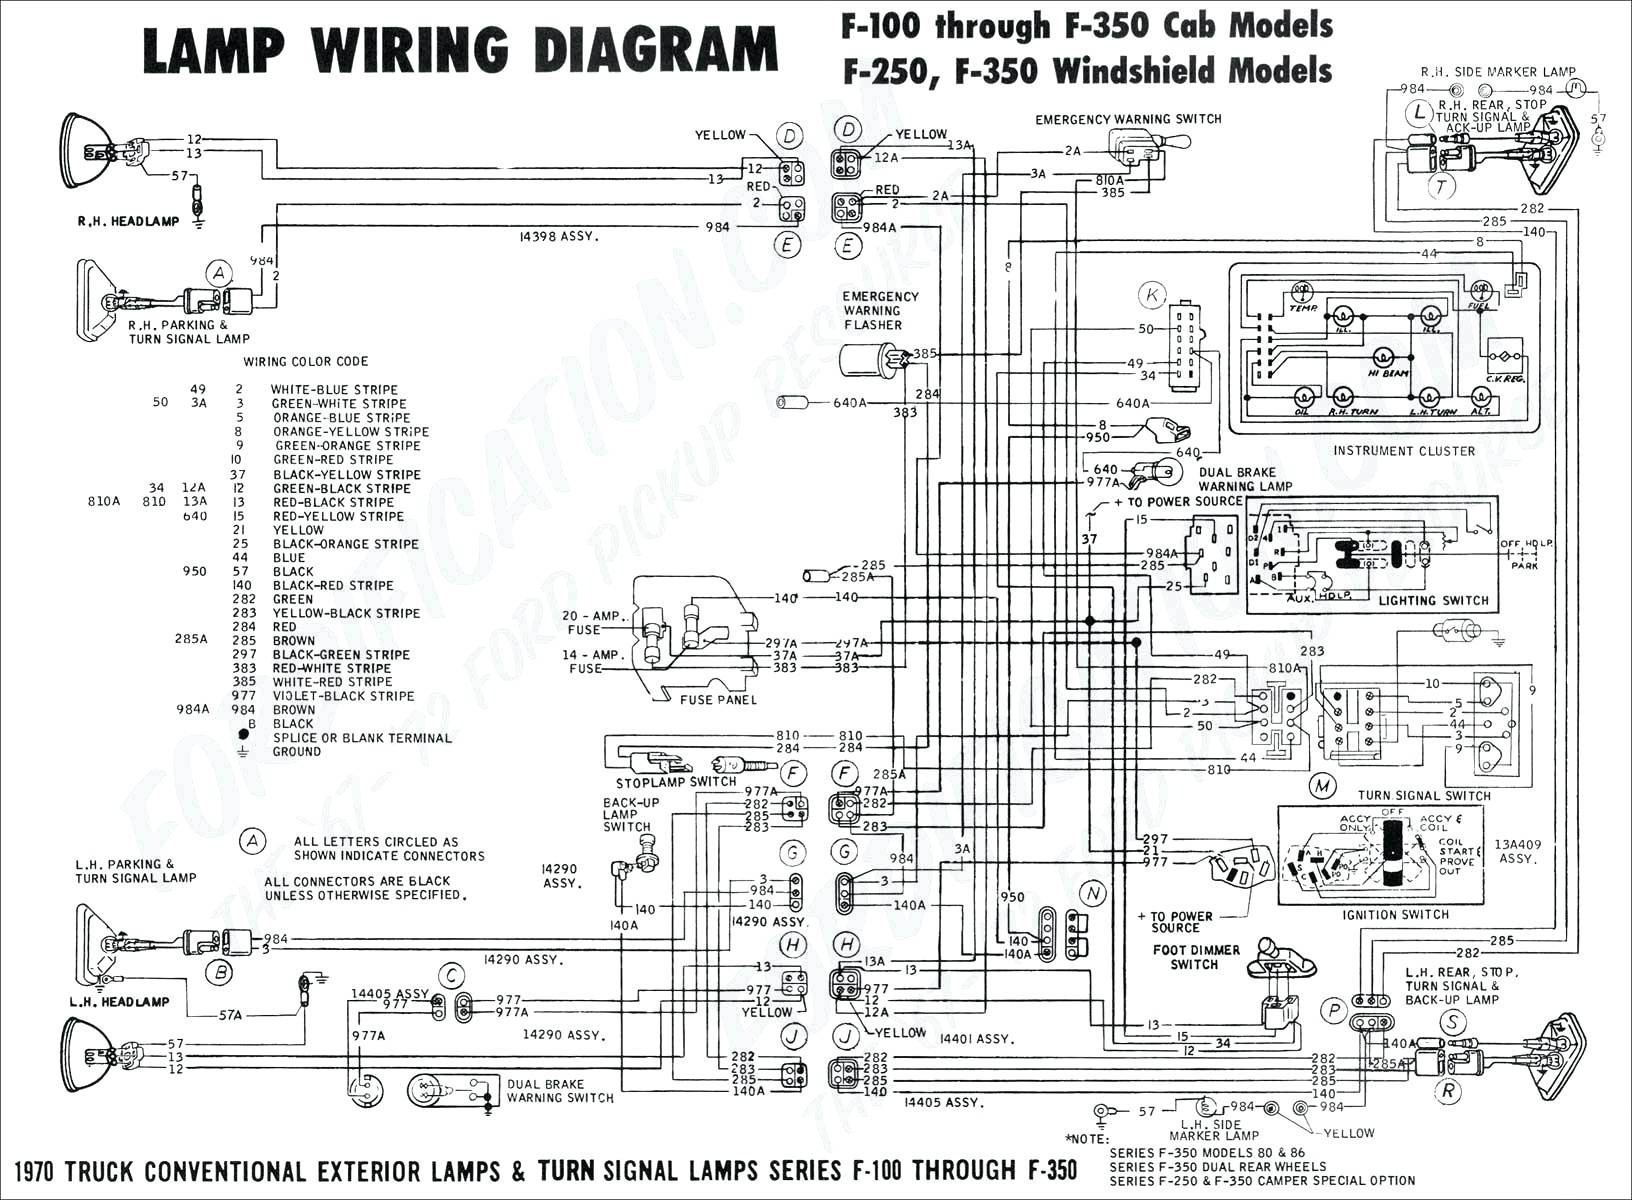 Meyer Snow Plow Wiring Diagram Snow Plow Wiring Diagram Fresh Wiring Diagram for Meyers Snow Plow Of Meyer Snow Plow Wiring Diagram Myers Qp 30 Wiring Diagram Wiring